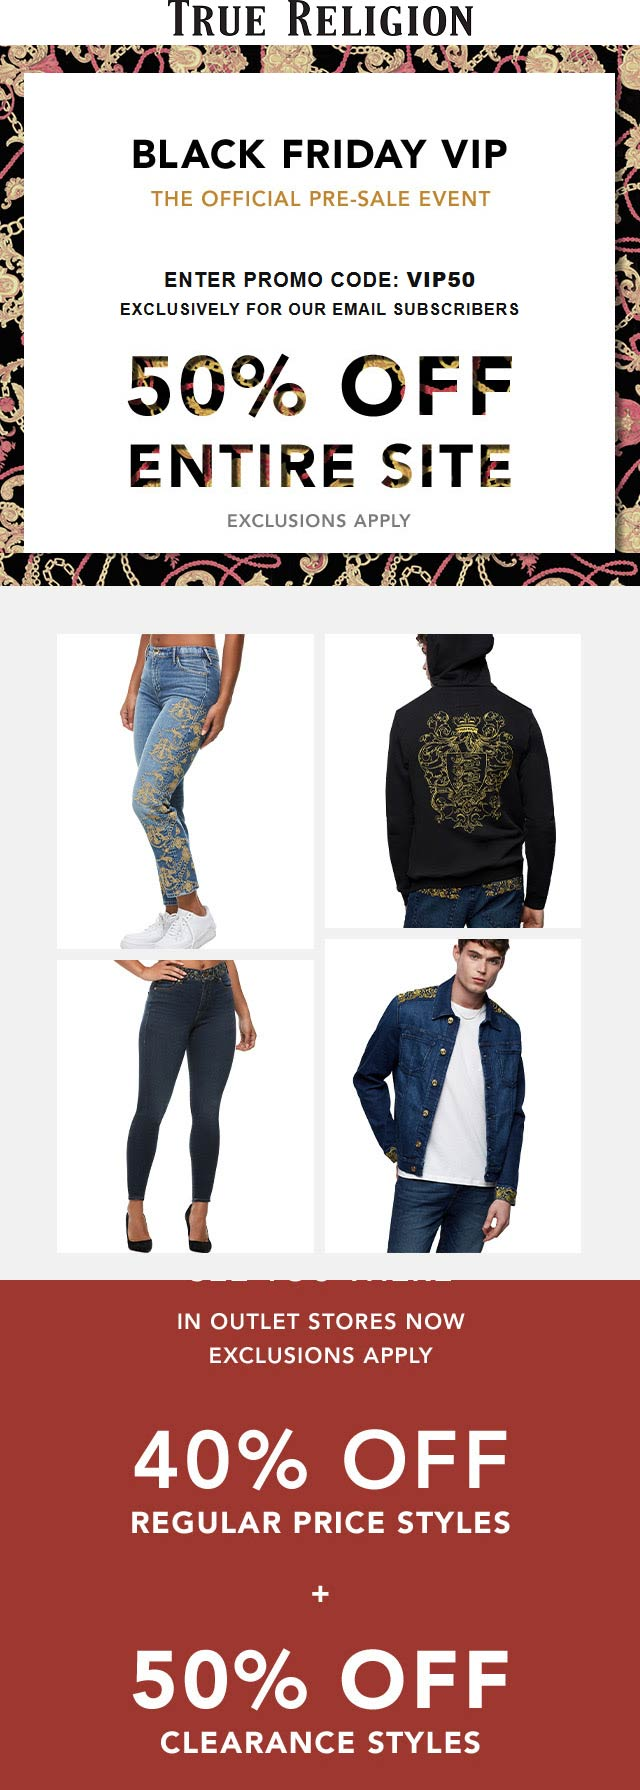 True Religion Coupon January 2020 50% off everything online at True Religion via promo code VIP50